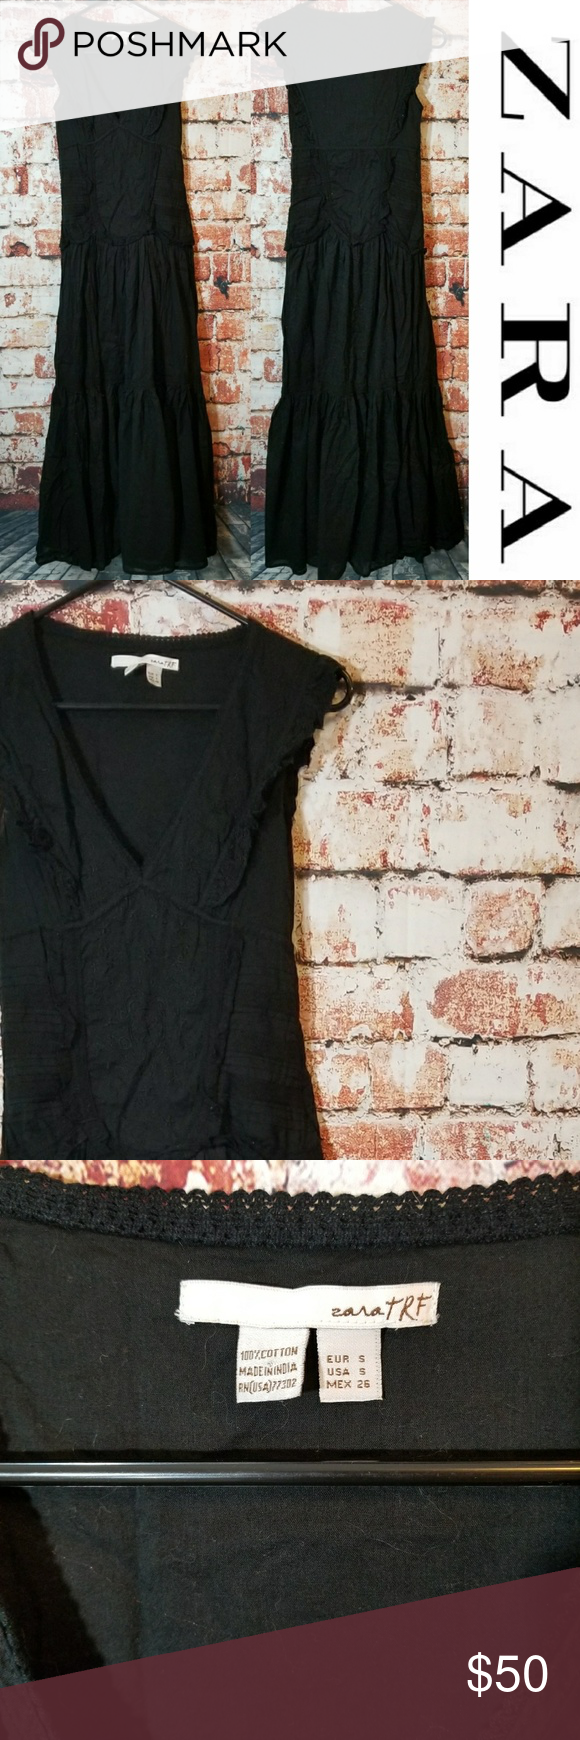 Zara long black boho dress long black zara dresses and boho